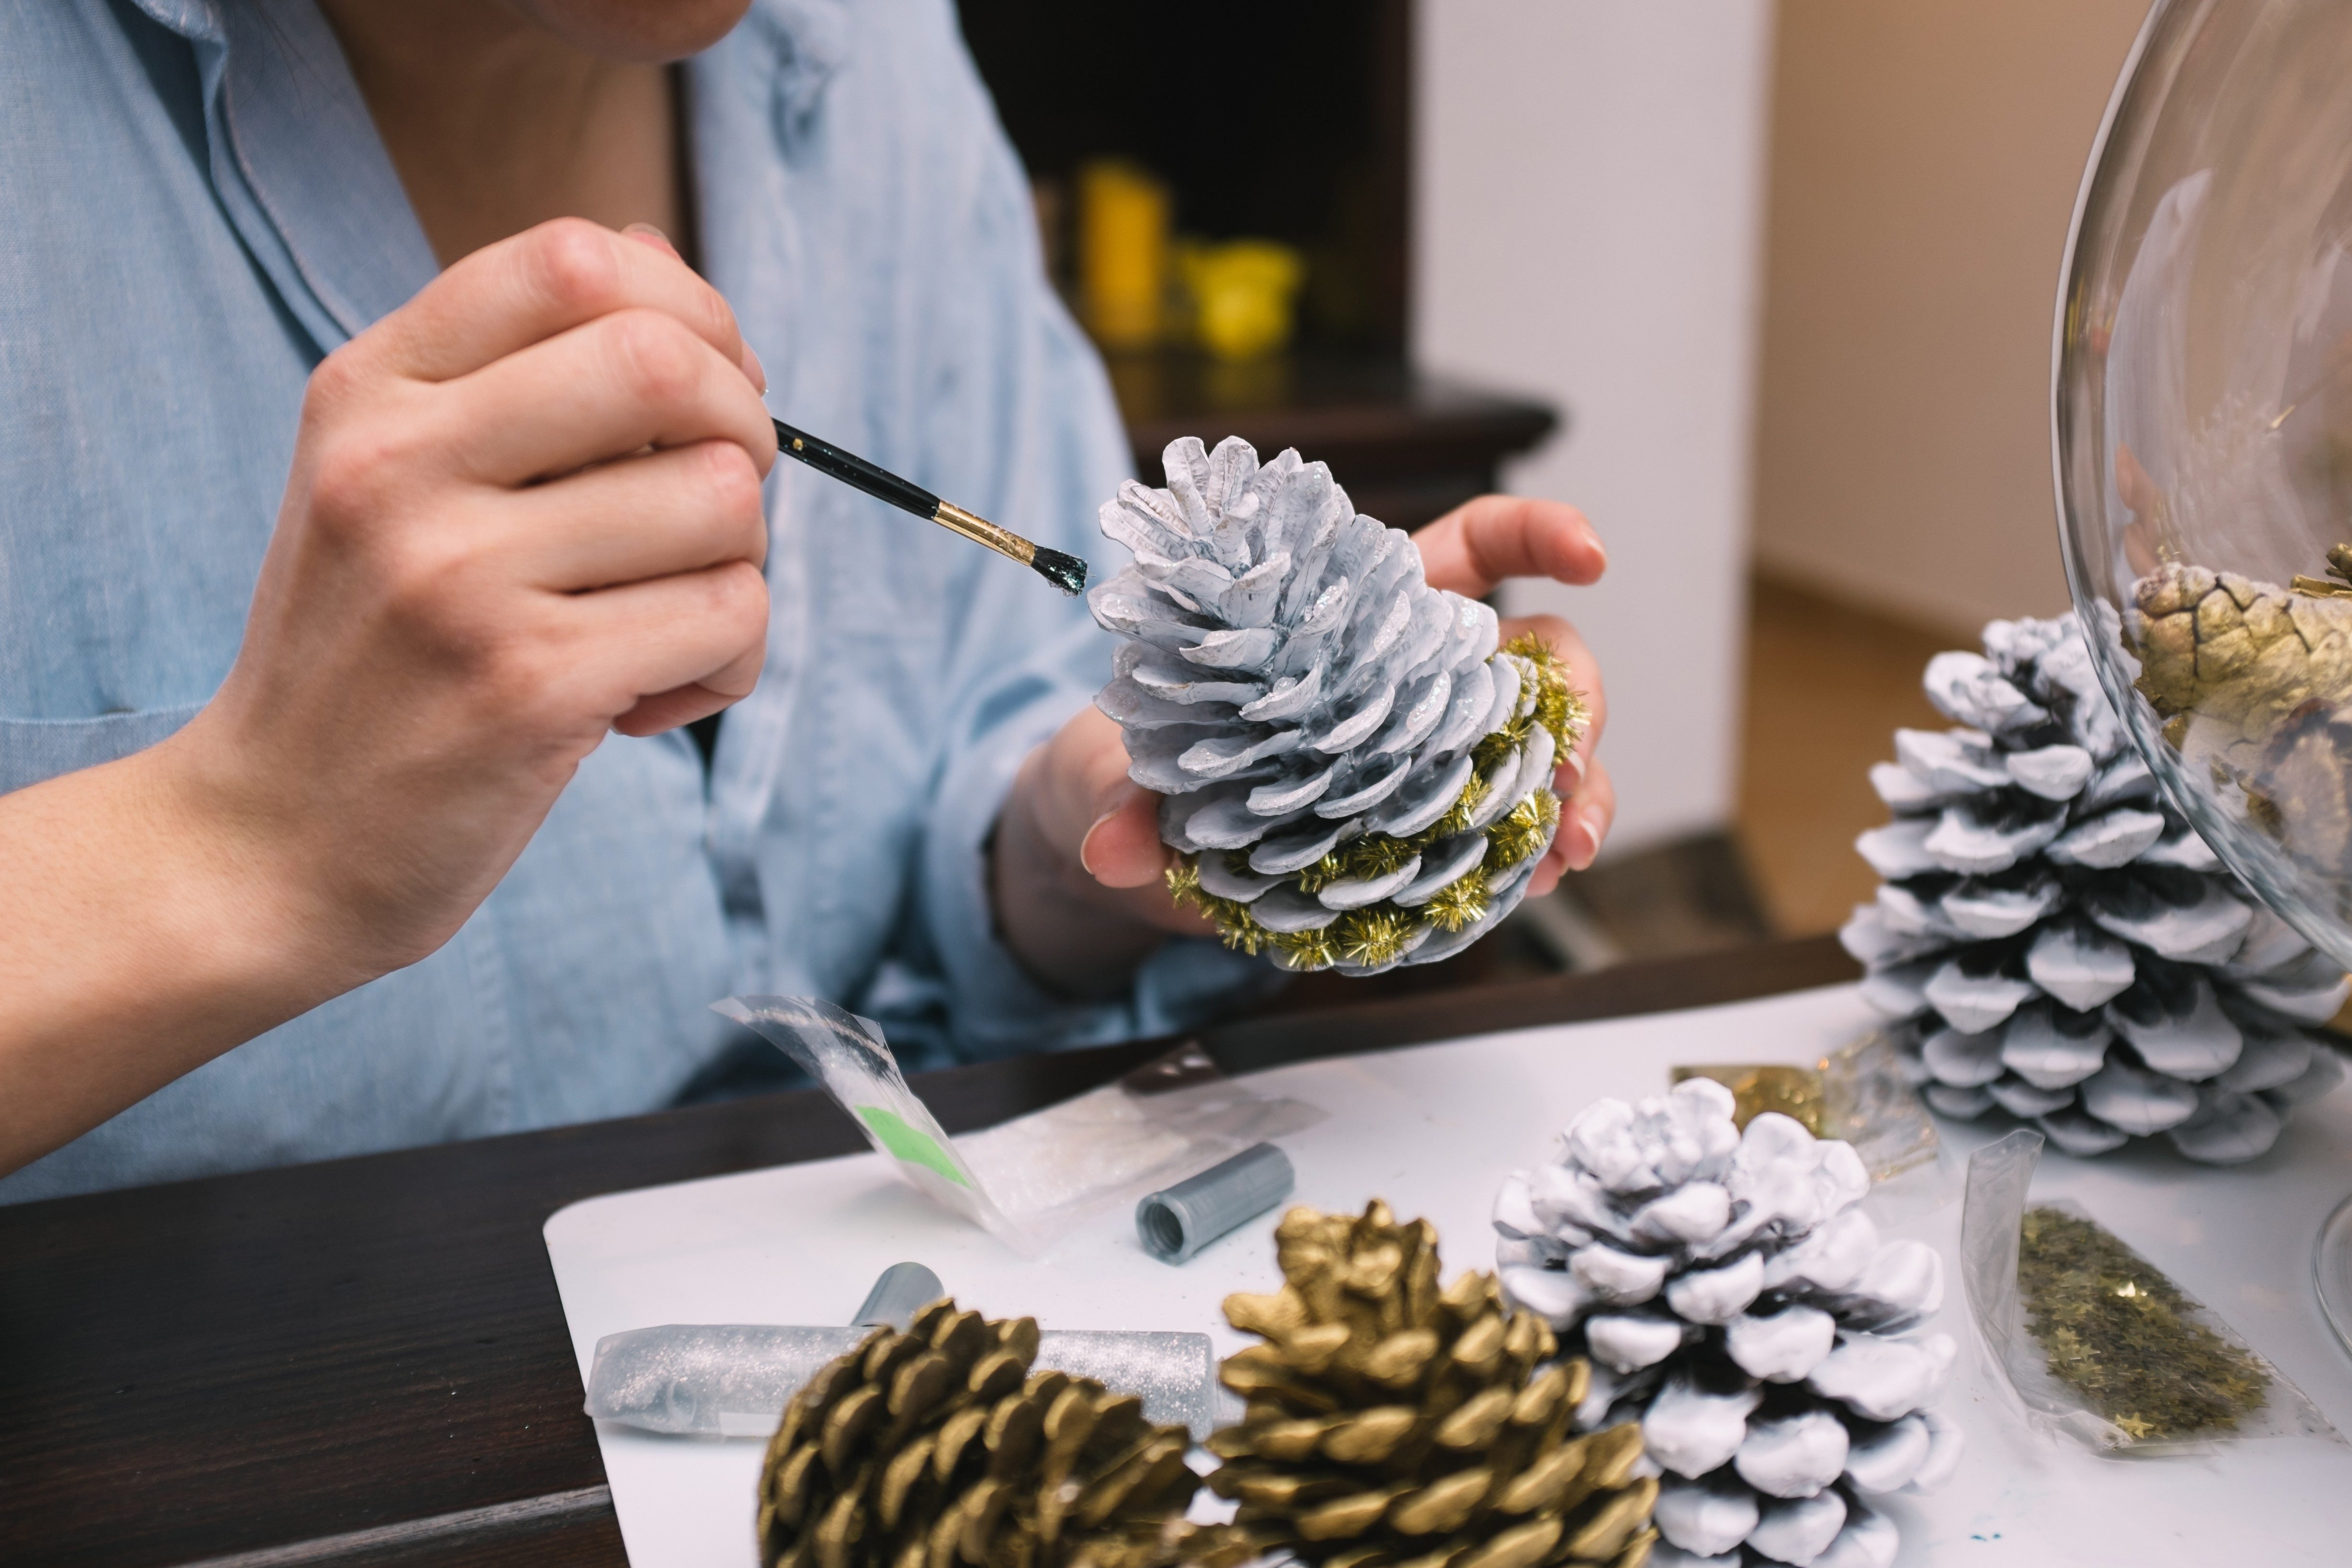 Woman painting pine cones for Christmas